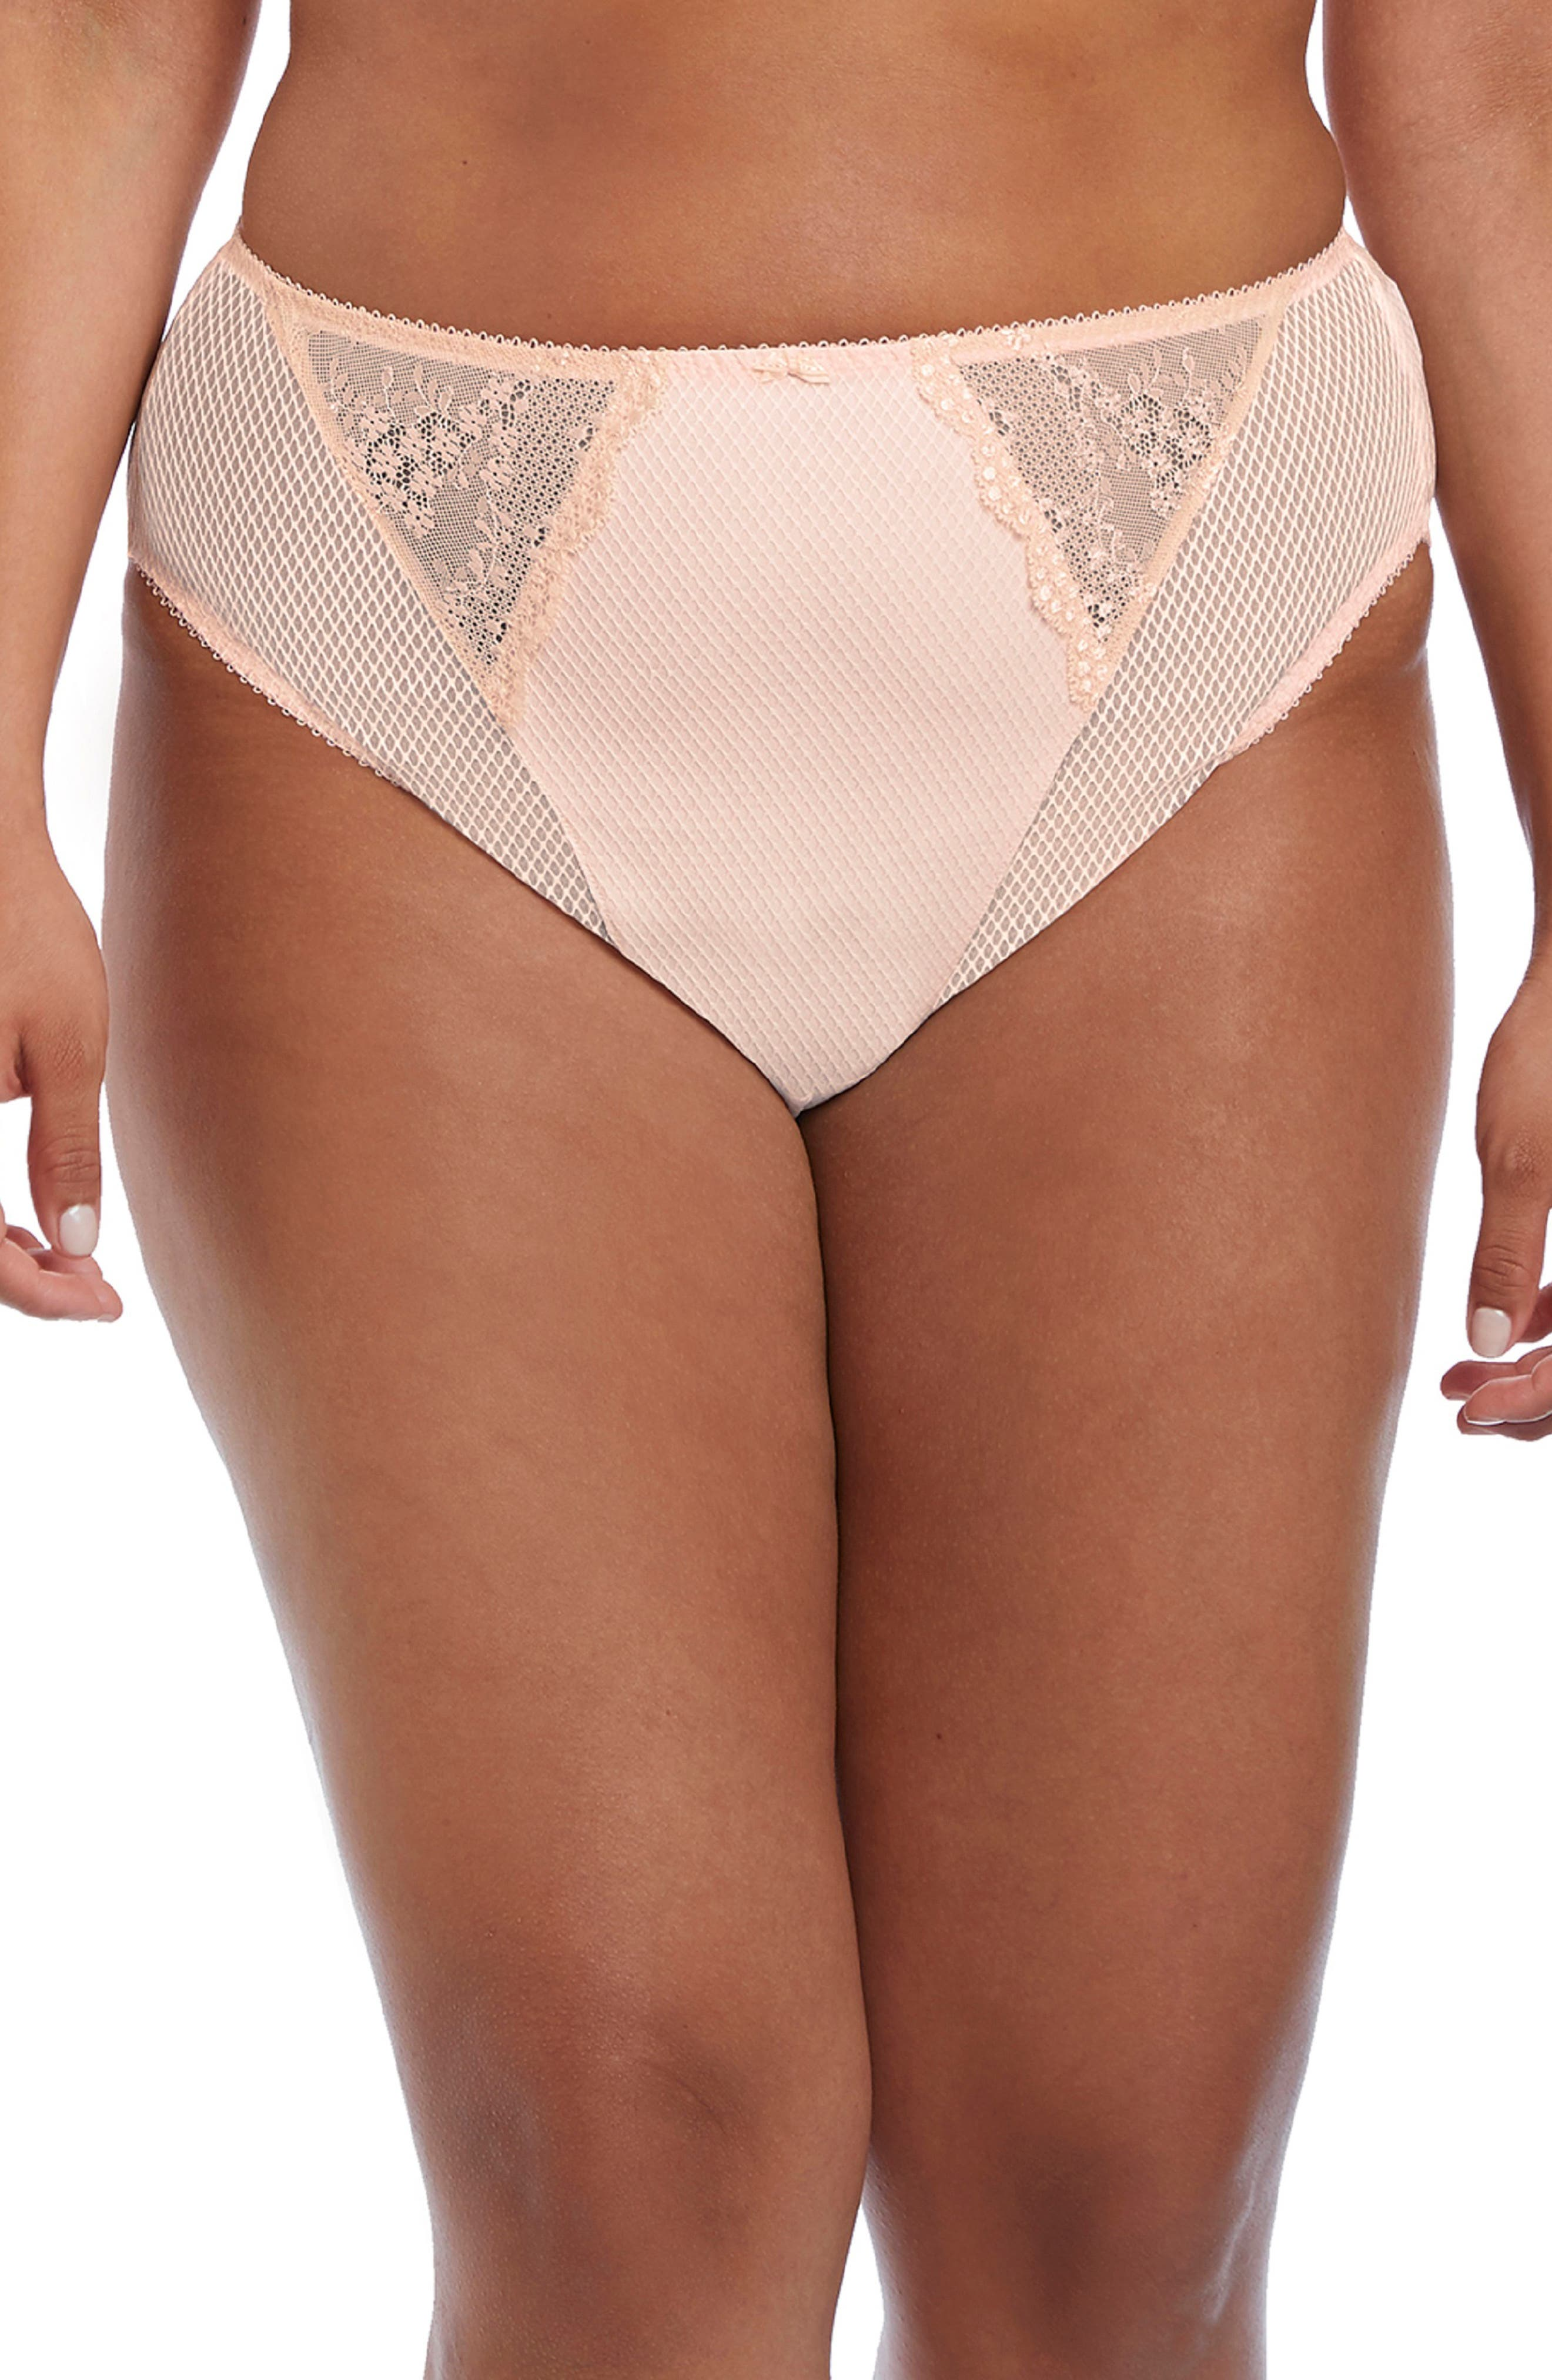 Diamond mesh and lace add a dash of everyday glamour to these high-cut briefs. Style Name: Elomi Charley High Cut Briefs. Style Number: 5996443. Available in stores.